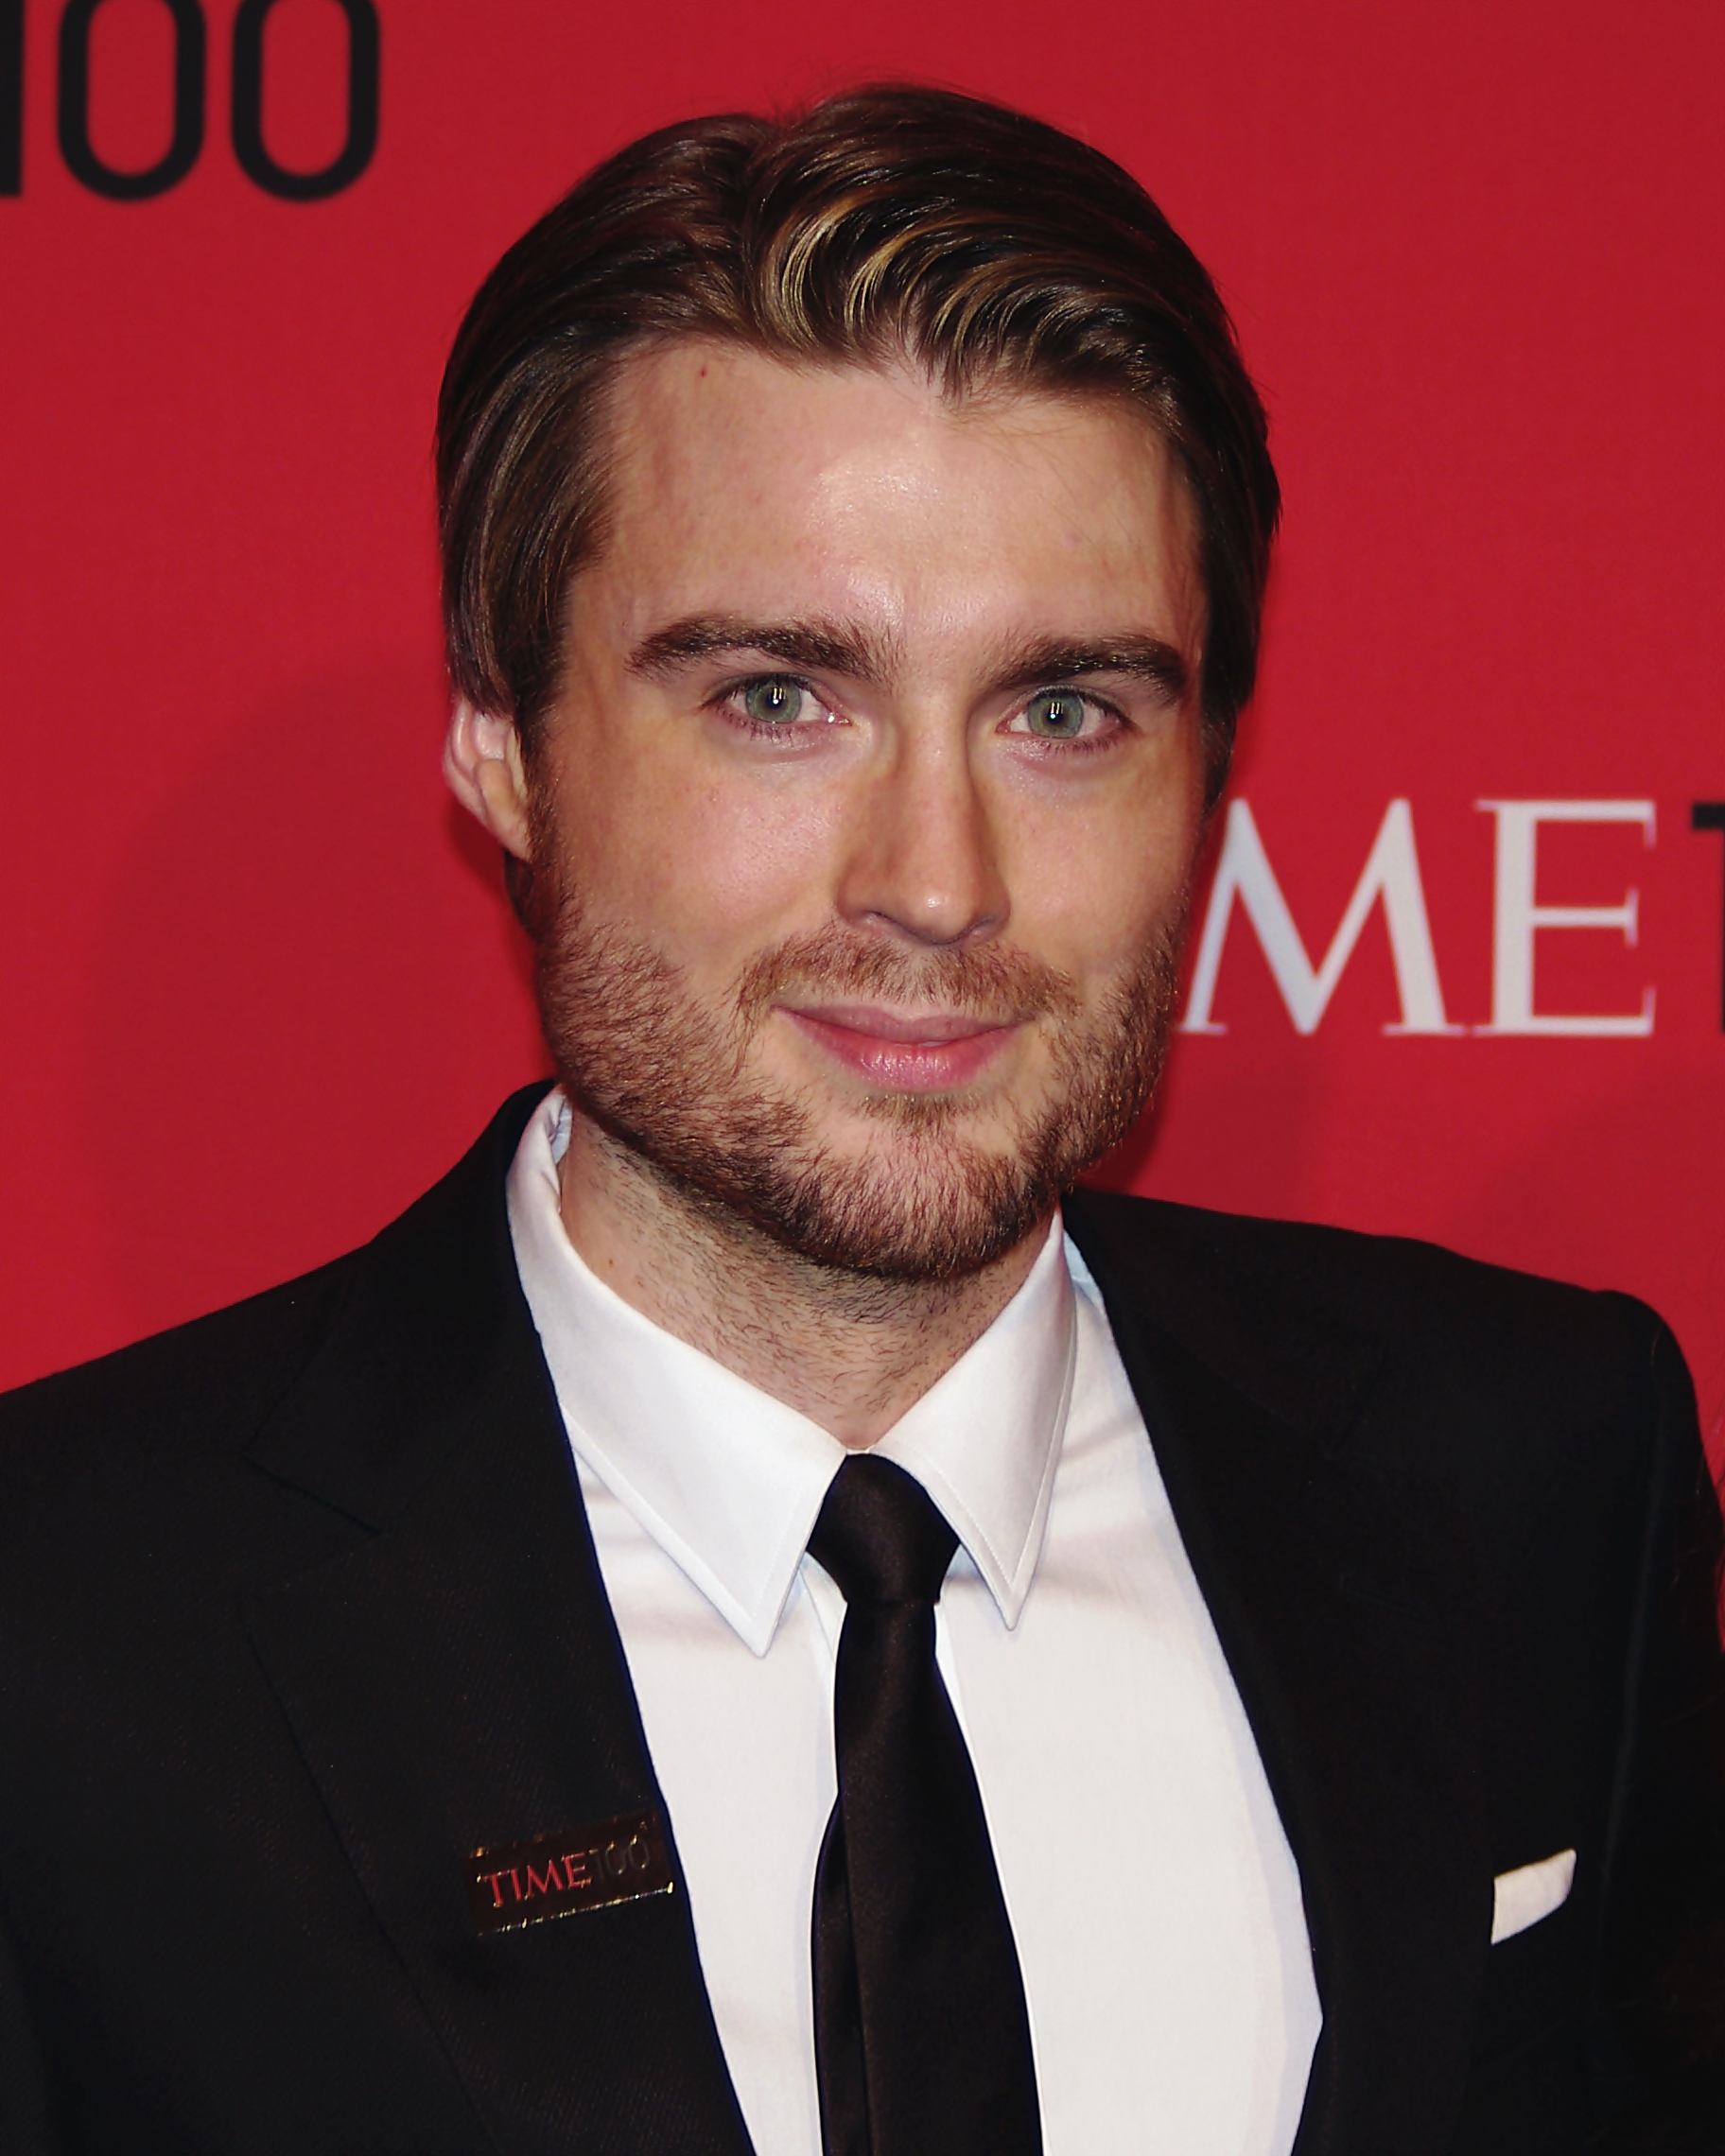 The 32-year old son of father (?) and mother(?), 182 cm tall Pete Cashmore in 2017 photo